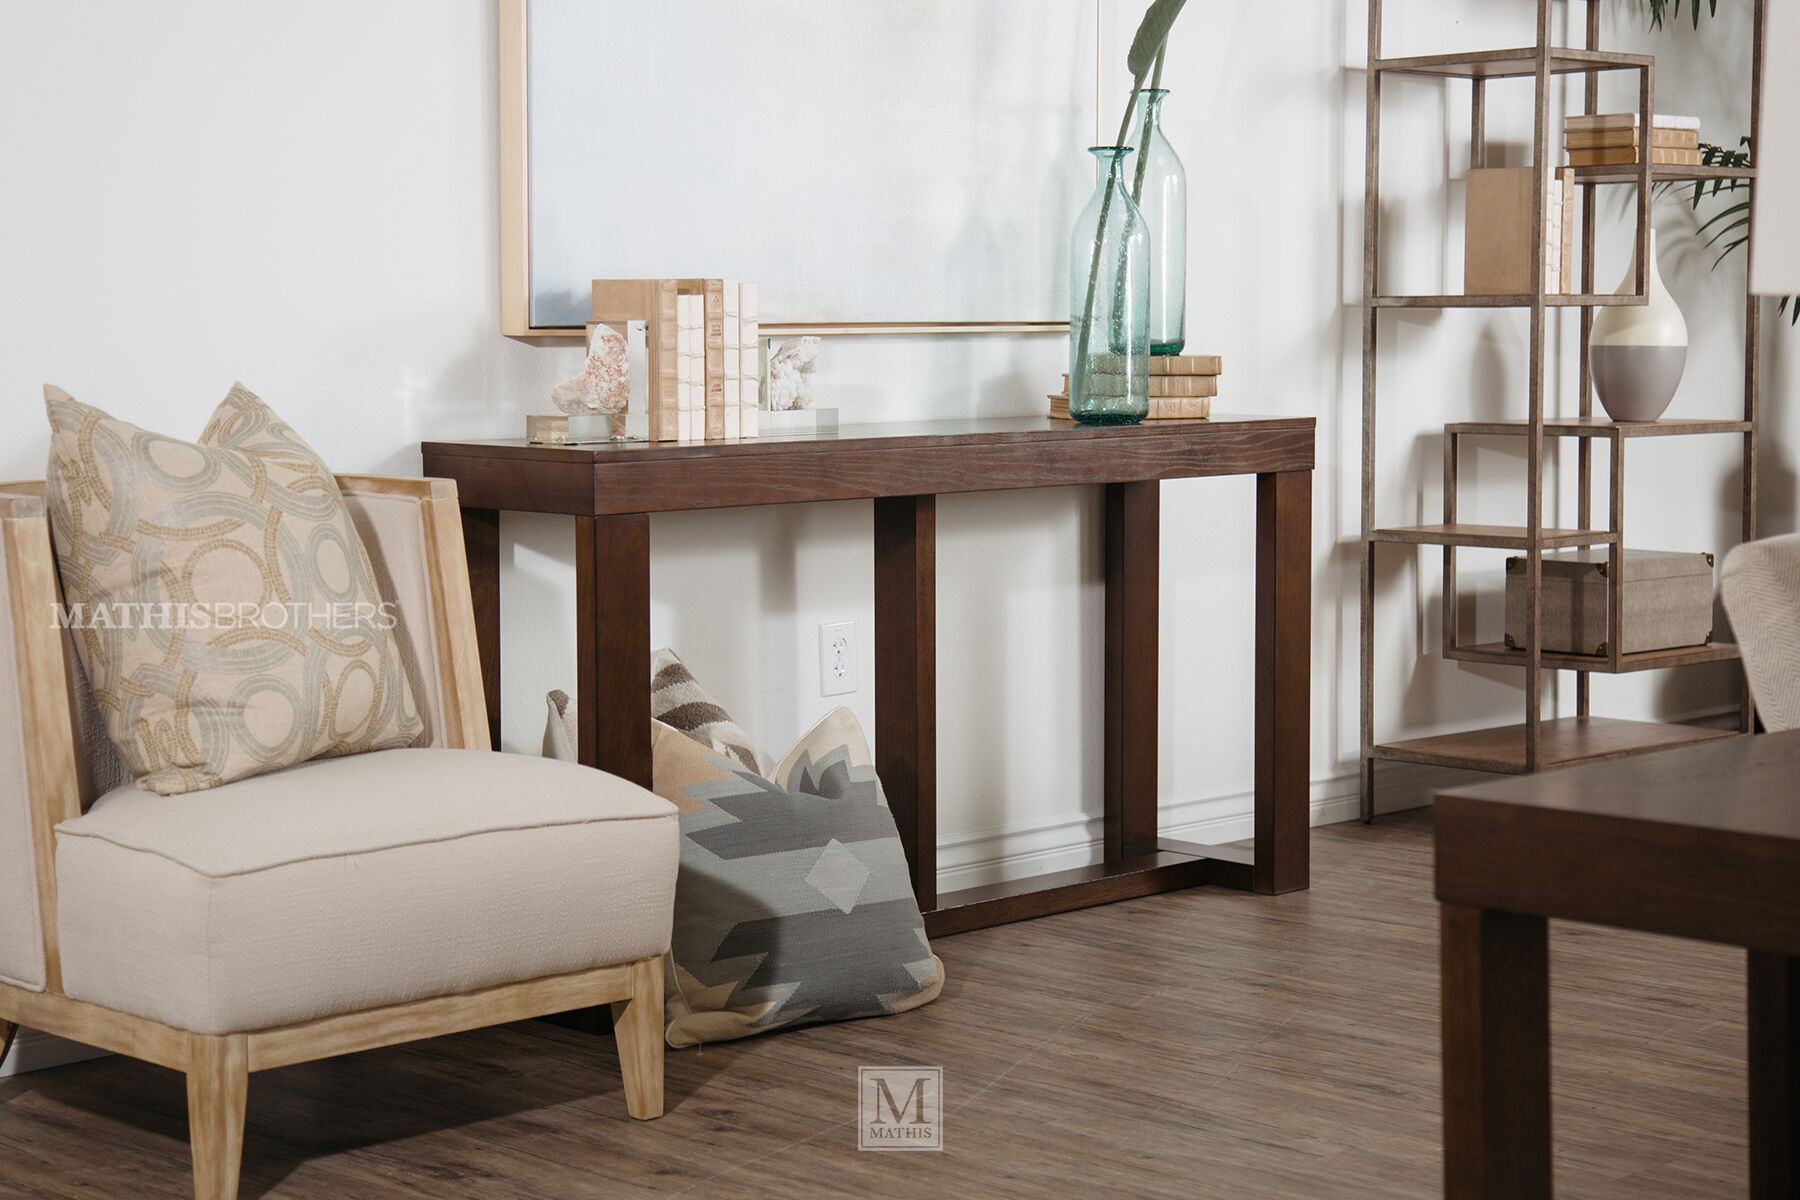 watson sofa table best leather cleaner and conditioner for ashley mathis brothers furniture